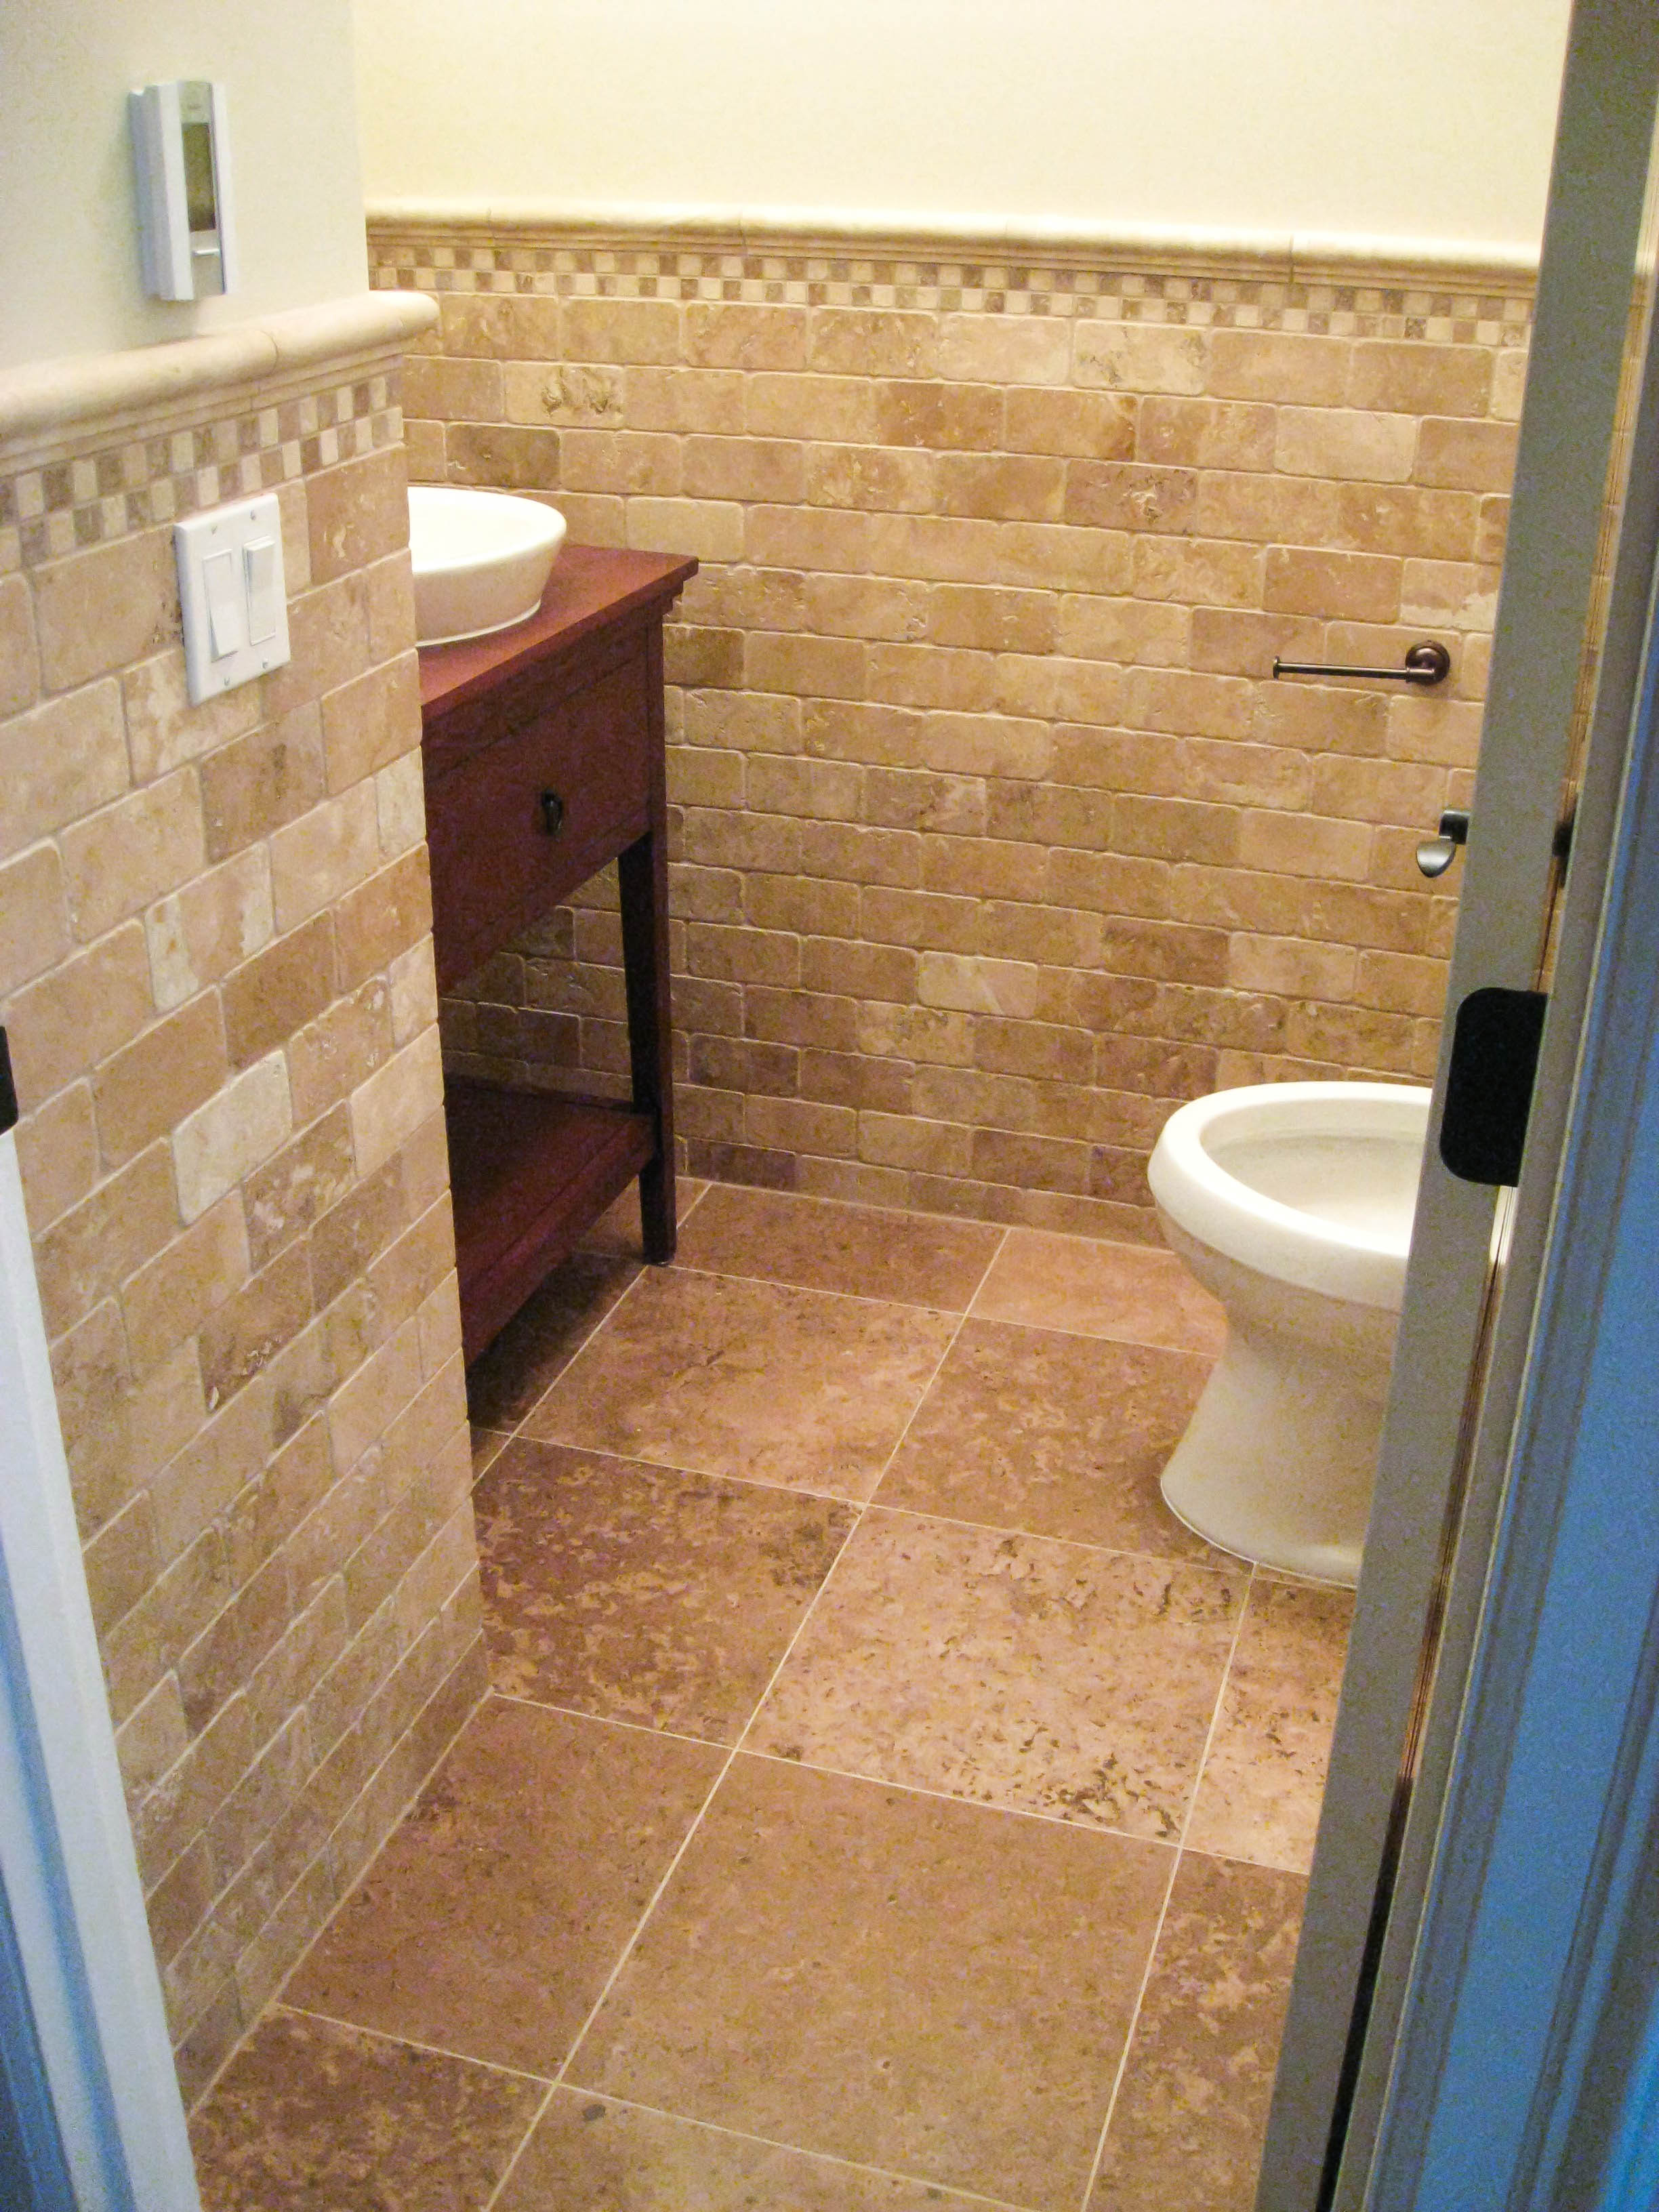 Bathroom wainscoting gallery tile contractor irc tiles services Tile bathroom